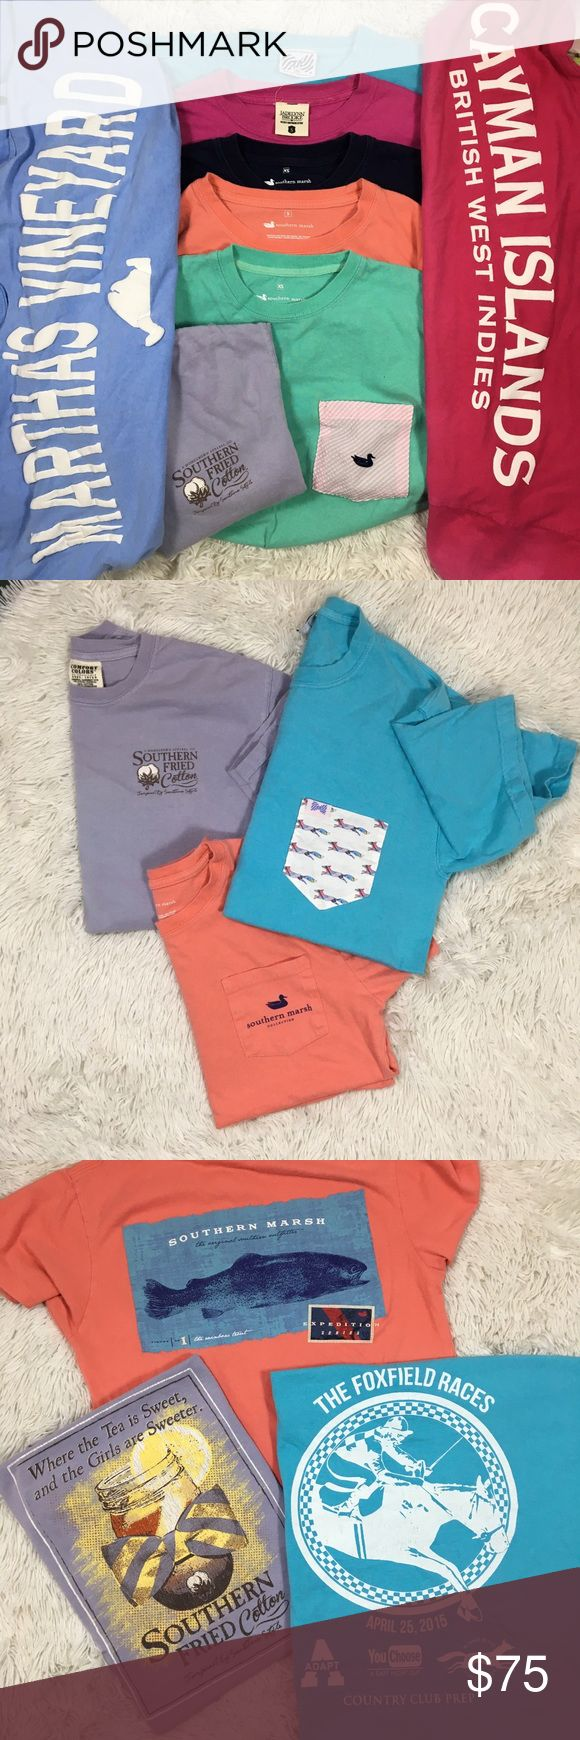 Lot of 8 Preppy T-Shirts Bundle XS/S/M 2 XS Southern Marsh long sleeve with a seersucker pocket. Rebekah spirit jersey. Retails $50 each  1 Spirit Jersey from the Cayman Islands. Retails $55  4 Short sleeve. Southern Marsh(S $30), Jadelynn Brooke(S $35) Southern Fried Cotton(S $25), and the Fraternity Collection(M $25).  1 S Spirit style jersey. Martha's Vineyard  Gently worn, some show wash wear. The Jadelynn Brooke has a small stain on the front and a sun bleached stain on the…